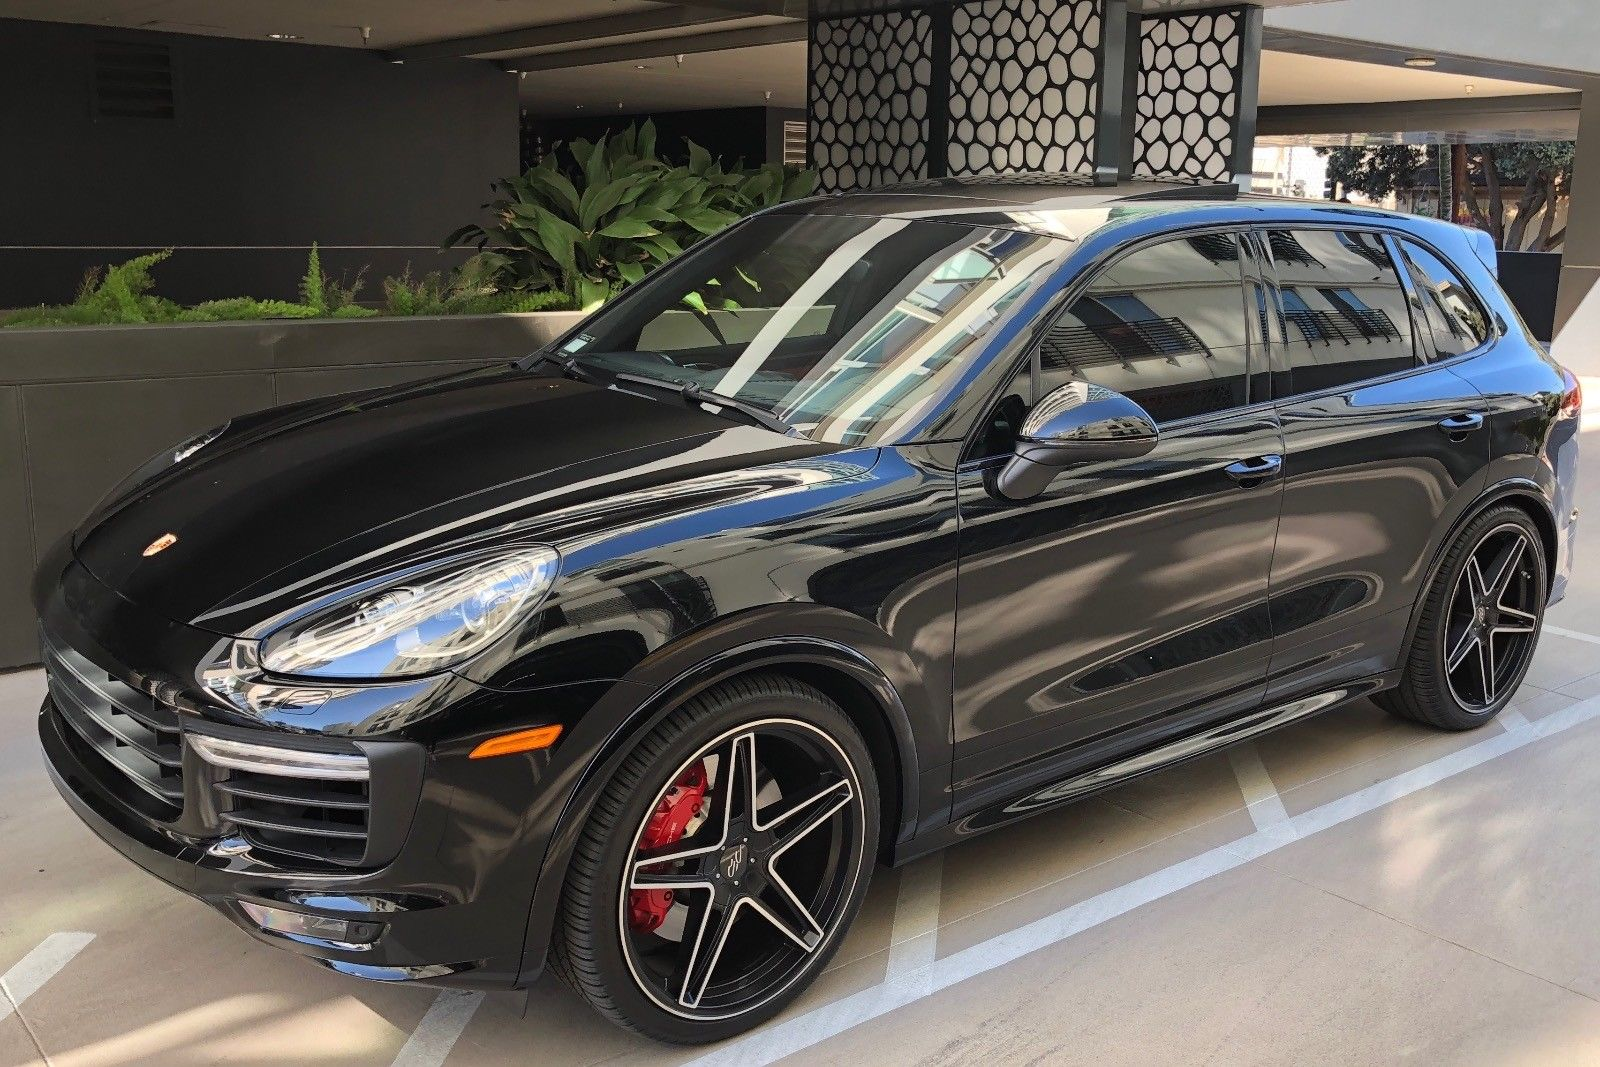 Used 2016 Porsche Cayenne Gts 2016 Porsche Cayenne Gts Black Premium Plus Package 22 Wheels Low Miles 2018 2019 Is In Stock And For Sale 24carshop Com